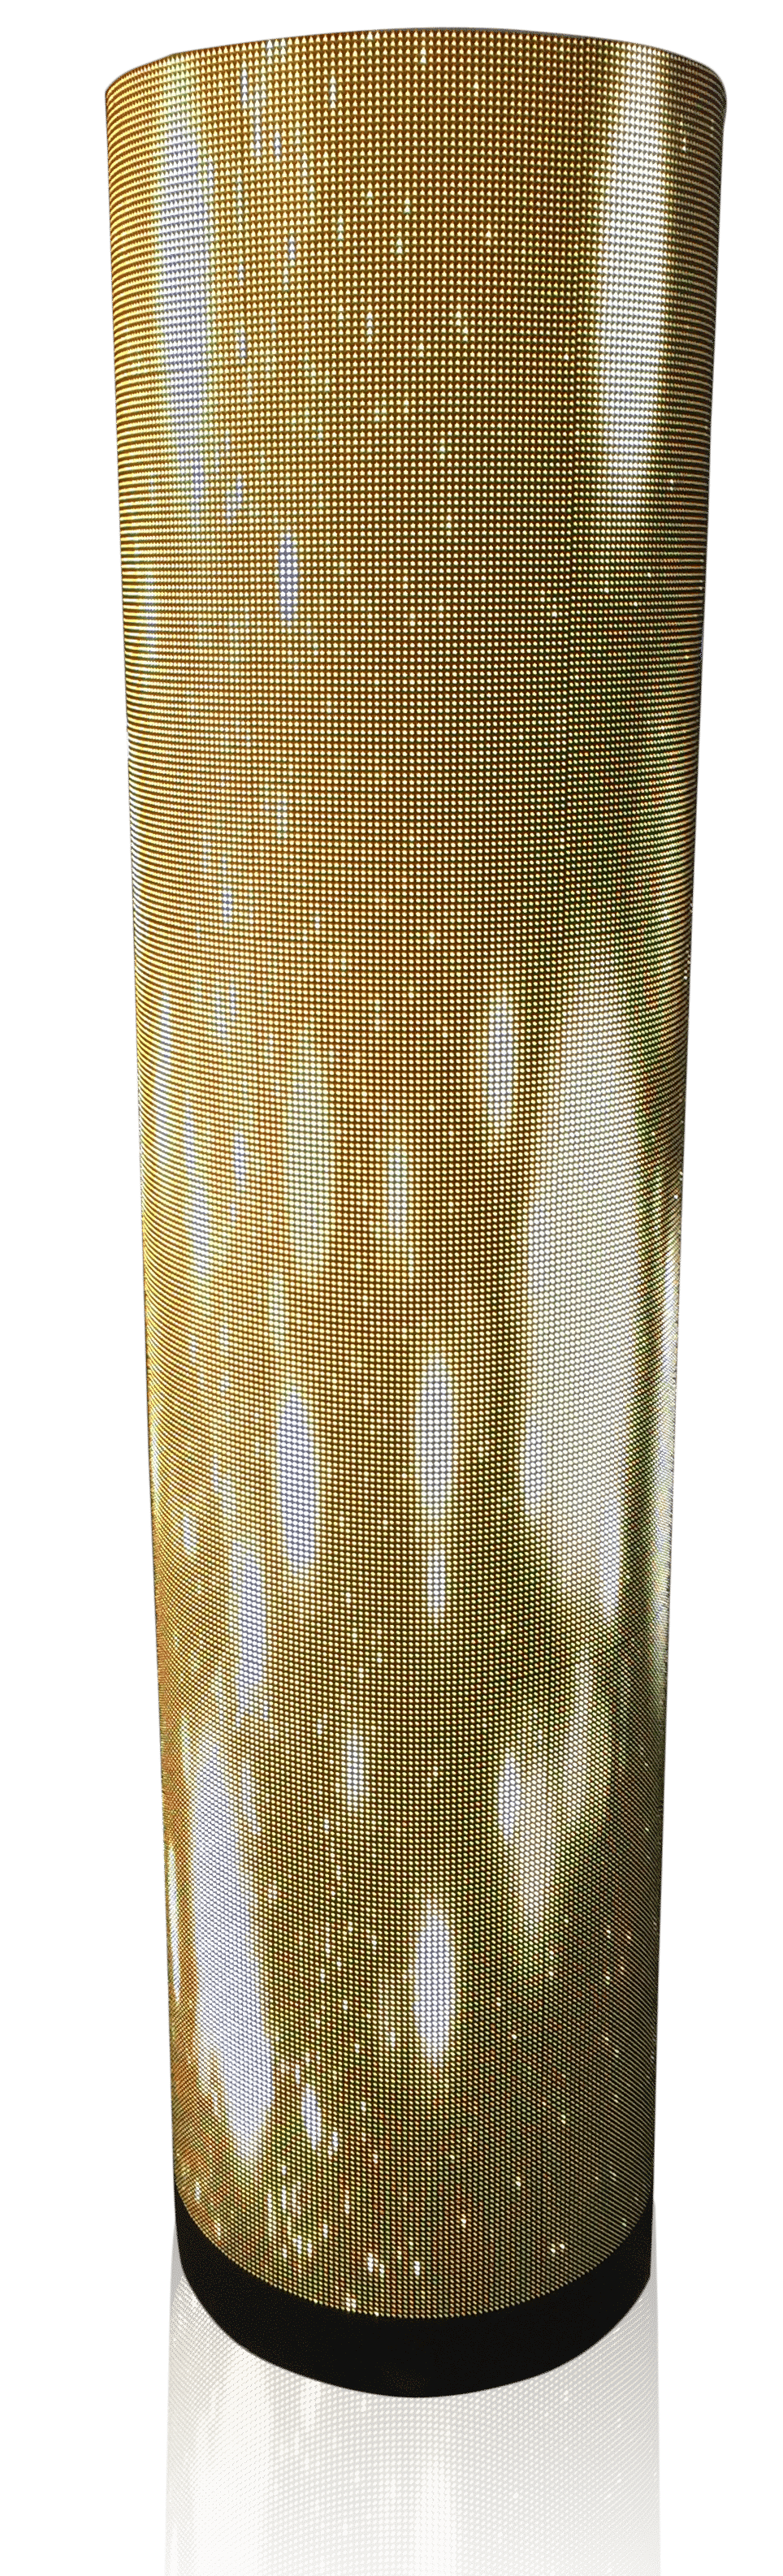 flexible led display module for cylinder shape design